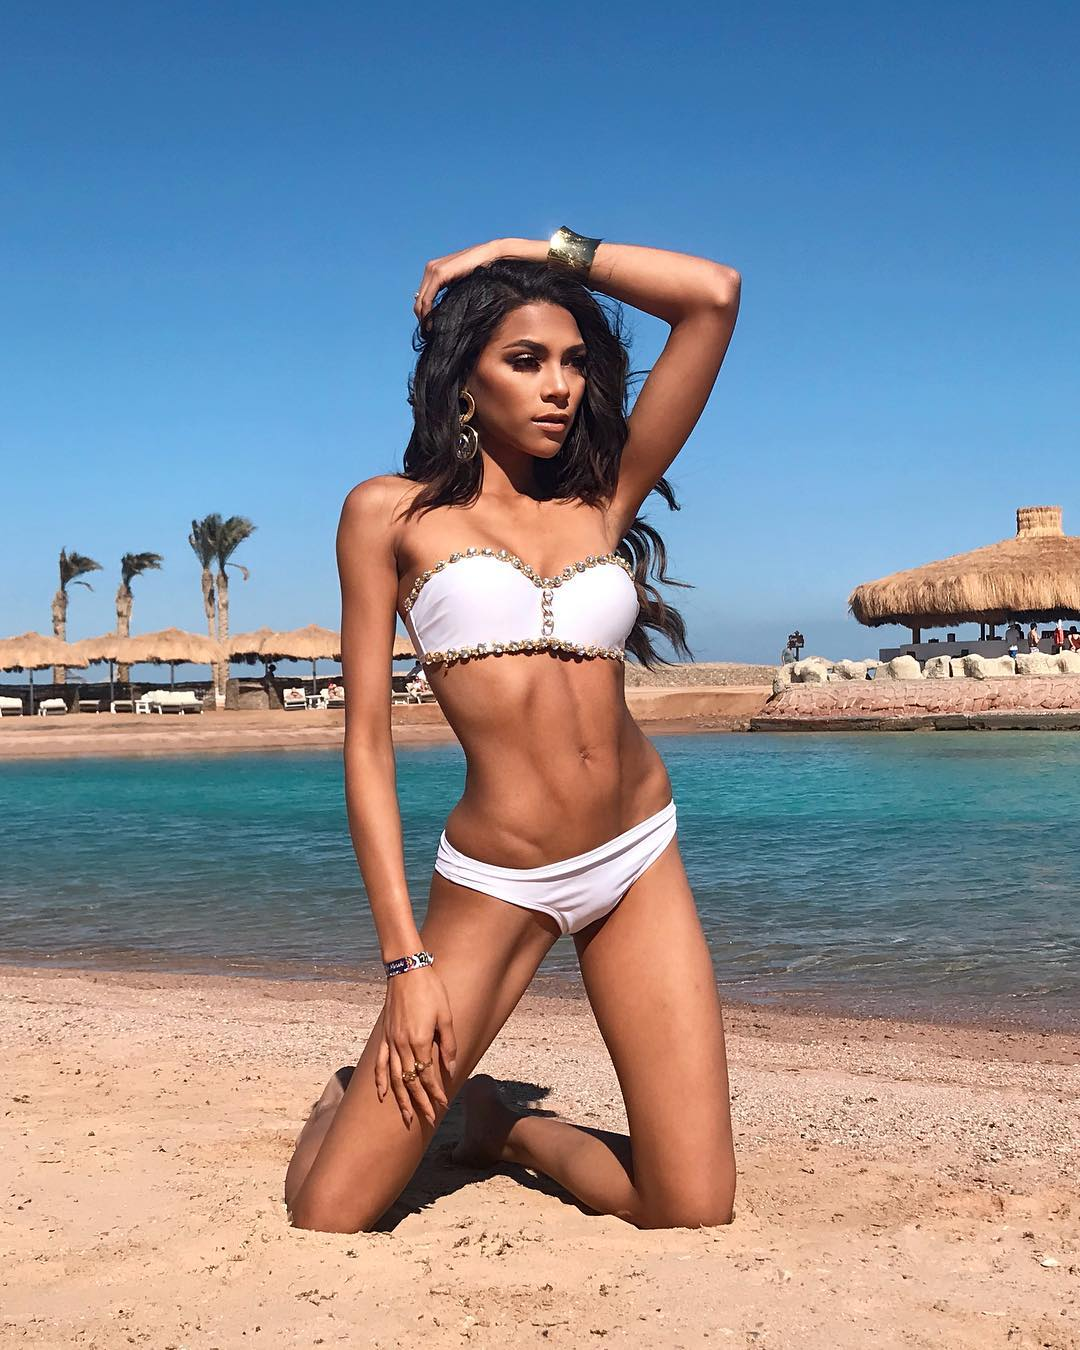 janet leyva, top model of the world 2018. Fuuxuk10